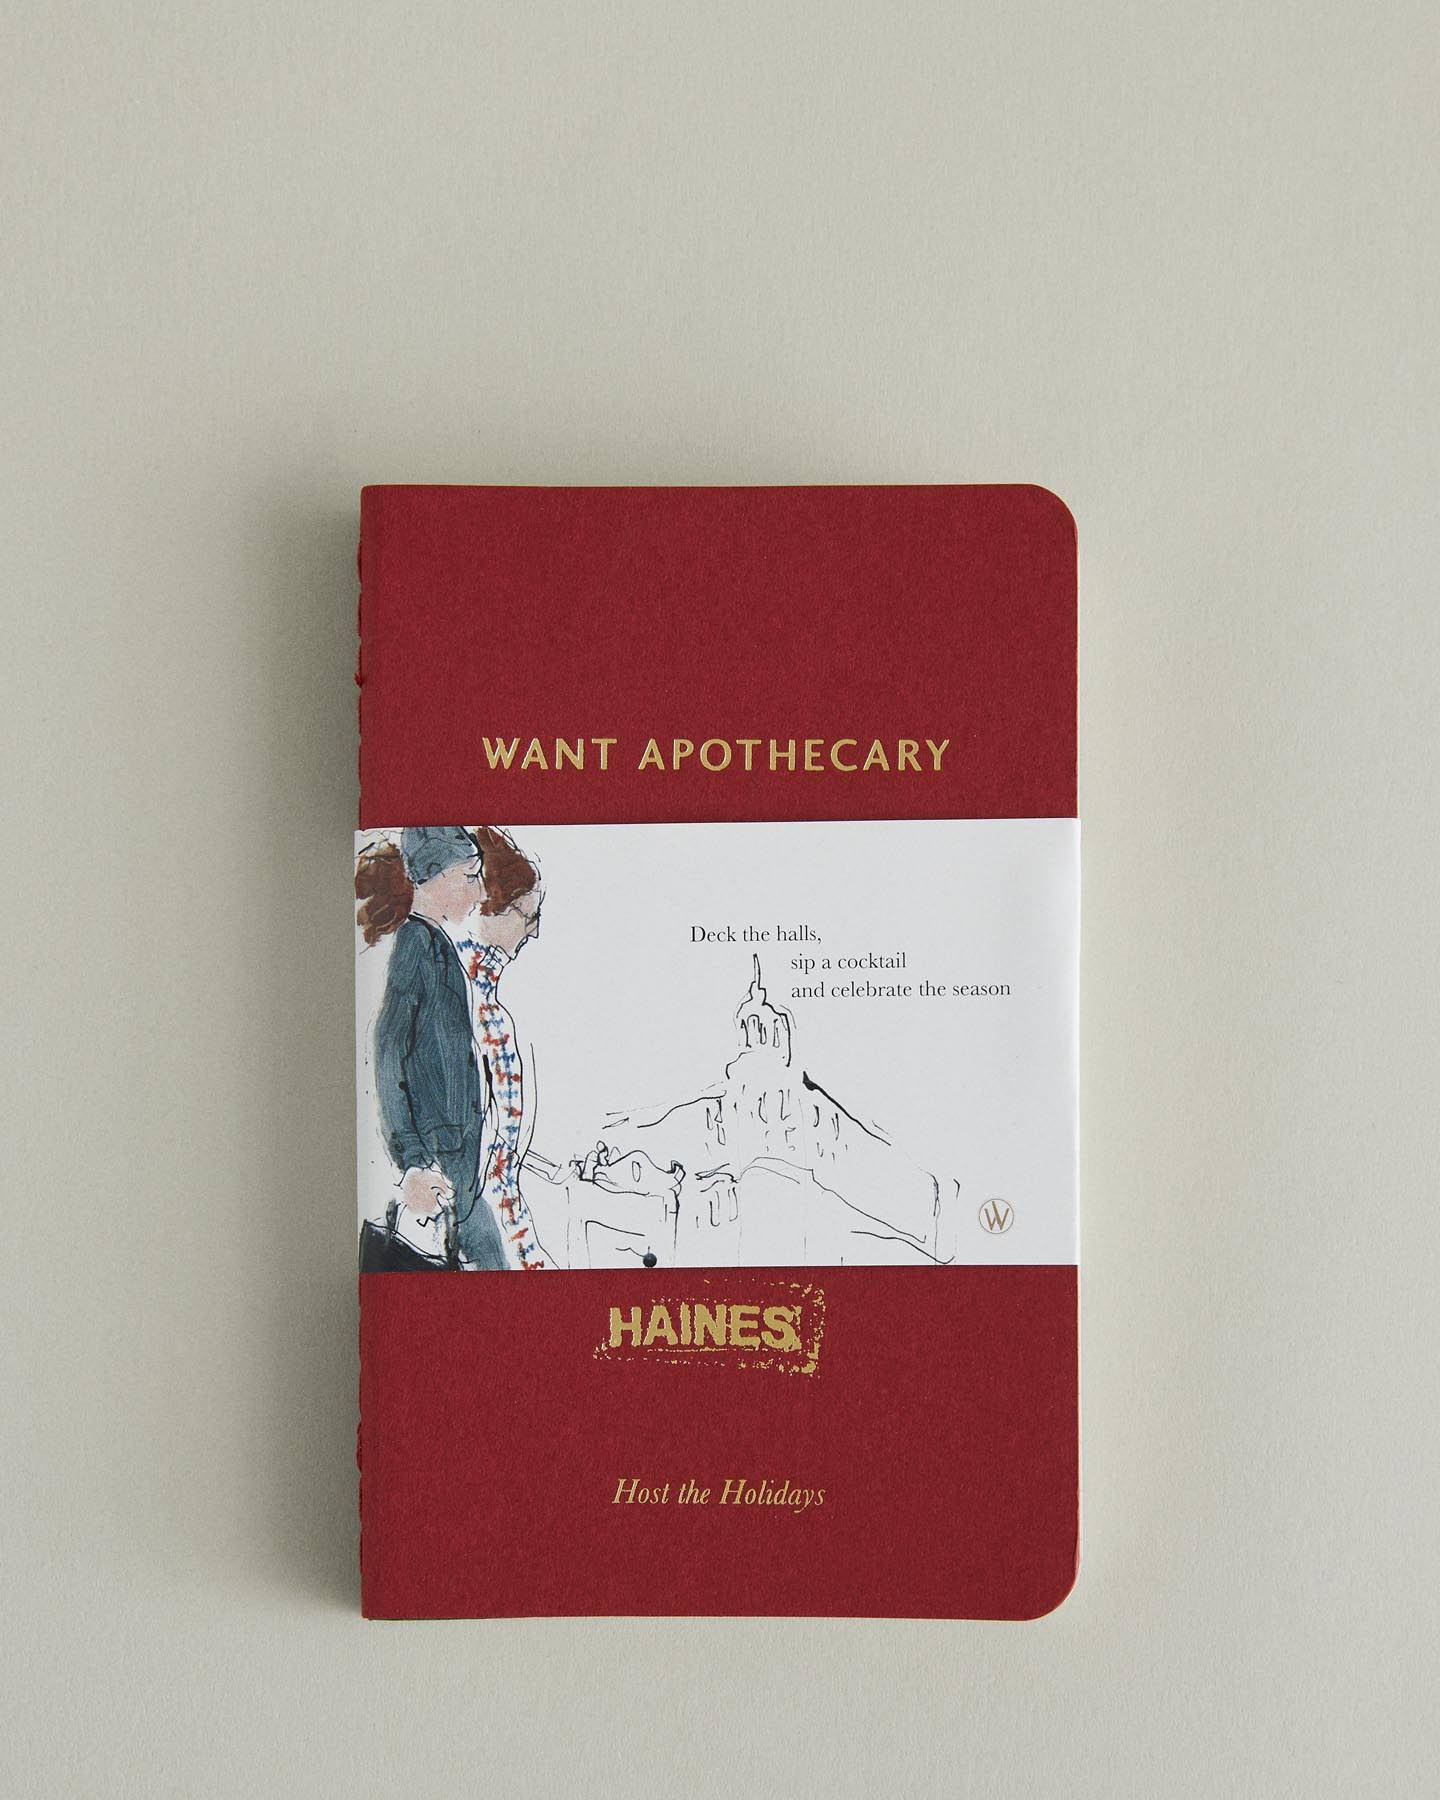 https://int.wantapothecary.com/products/set-of-3-richard-haines-soft-cover-moleskine-notebooks-nbsp